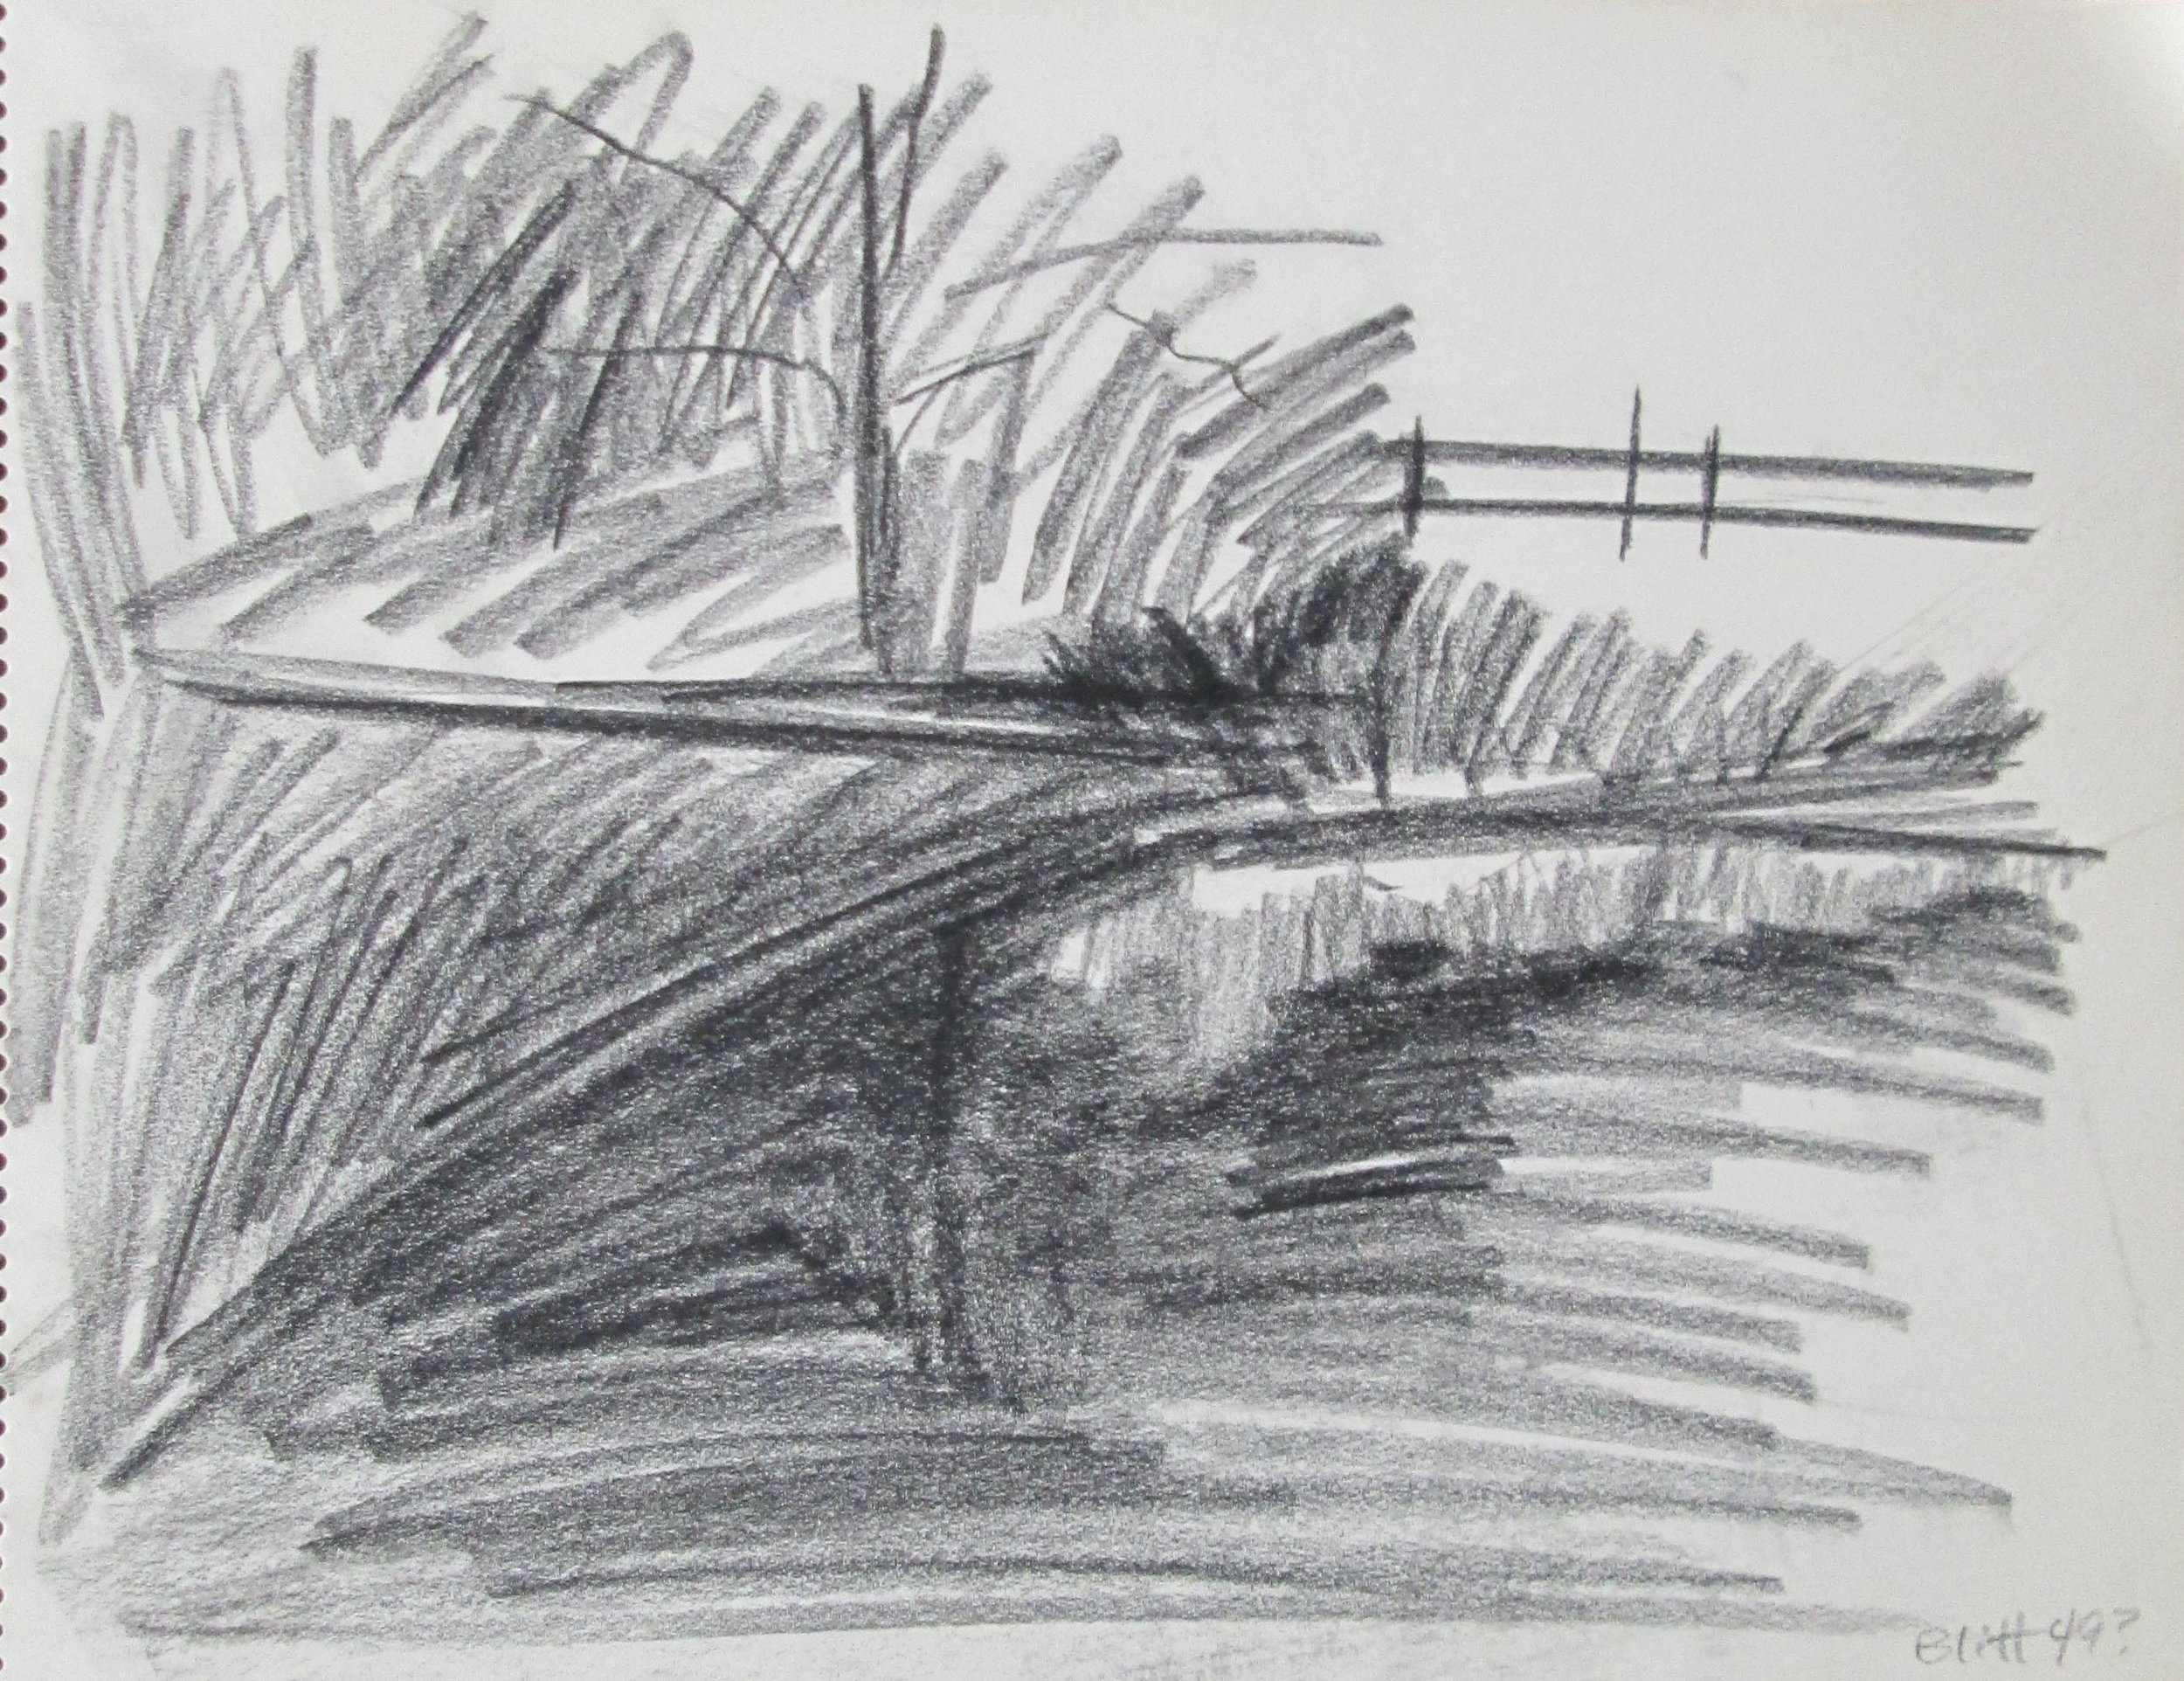 1950.0002  charcoal on paper, 11x14 inches